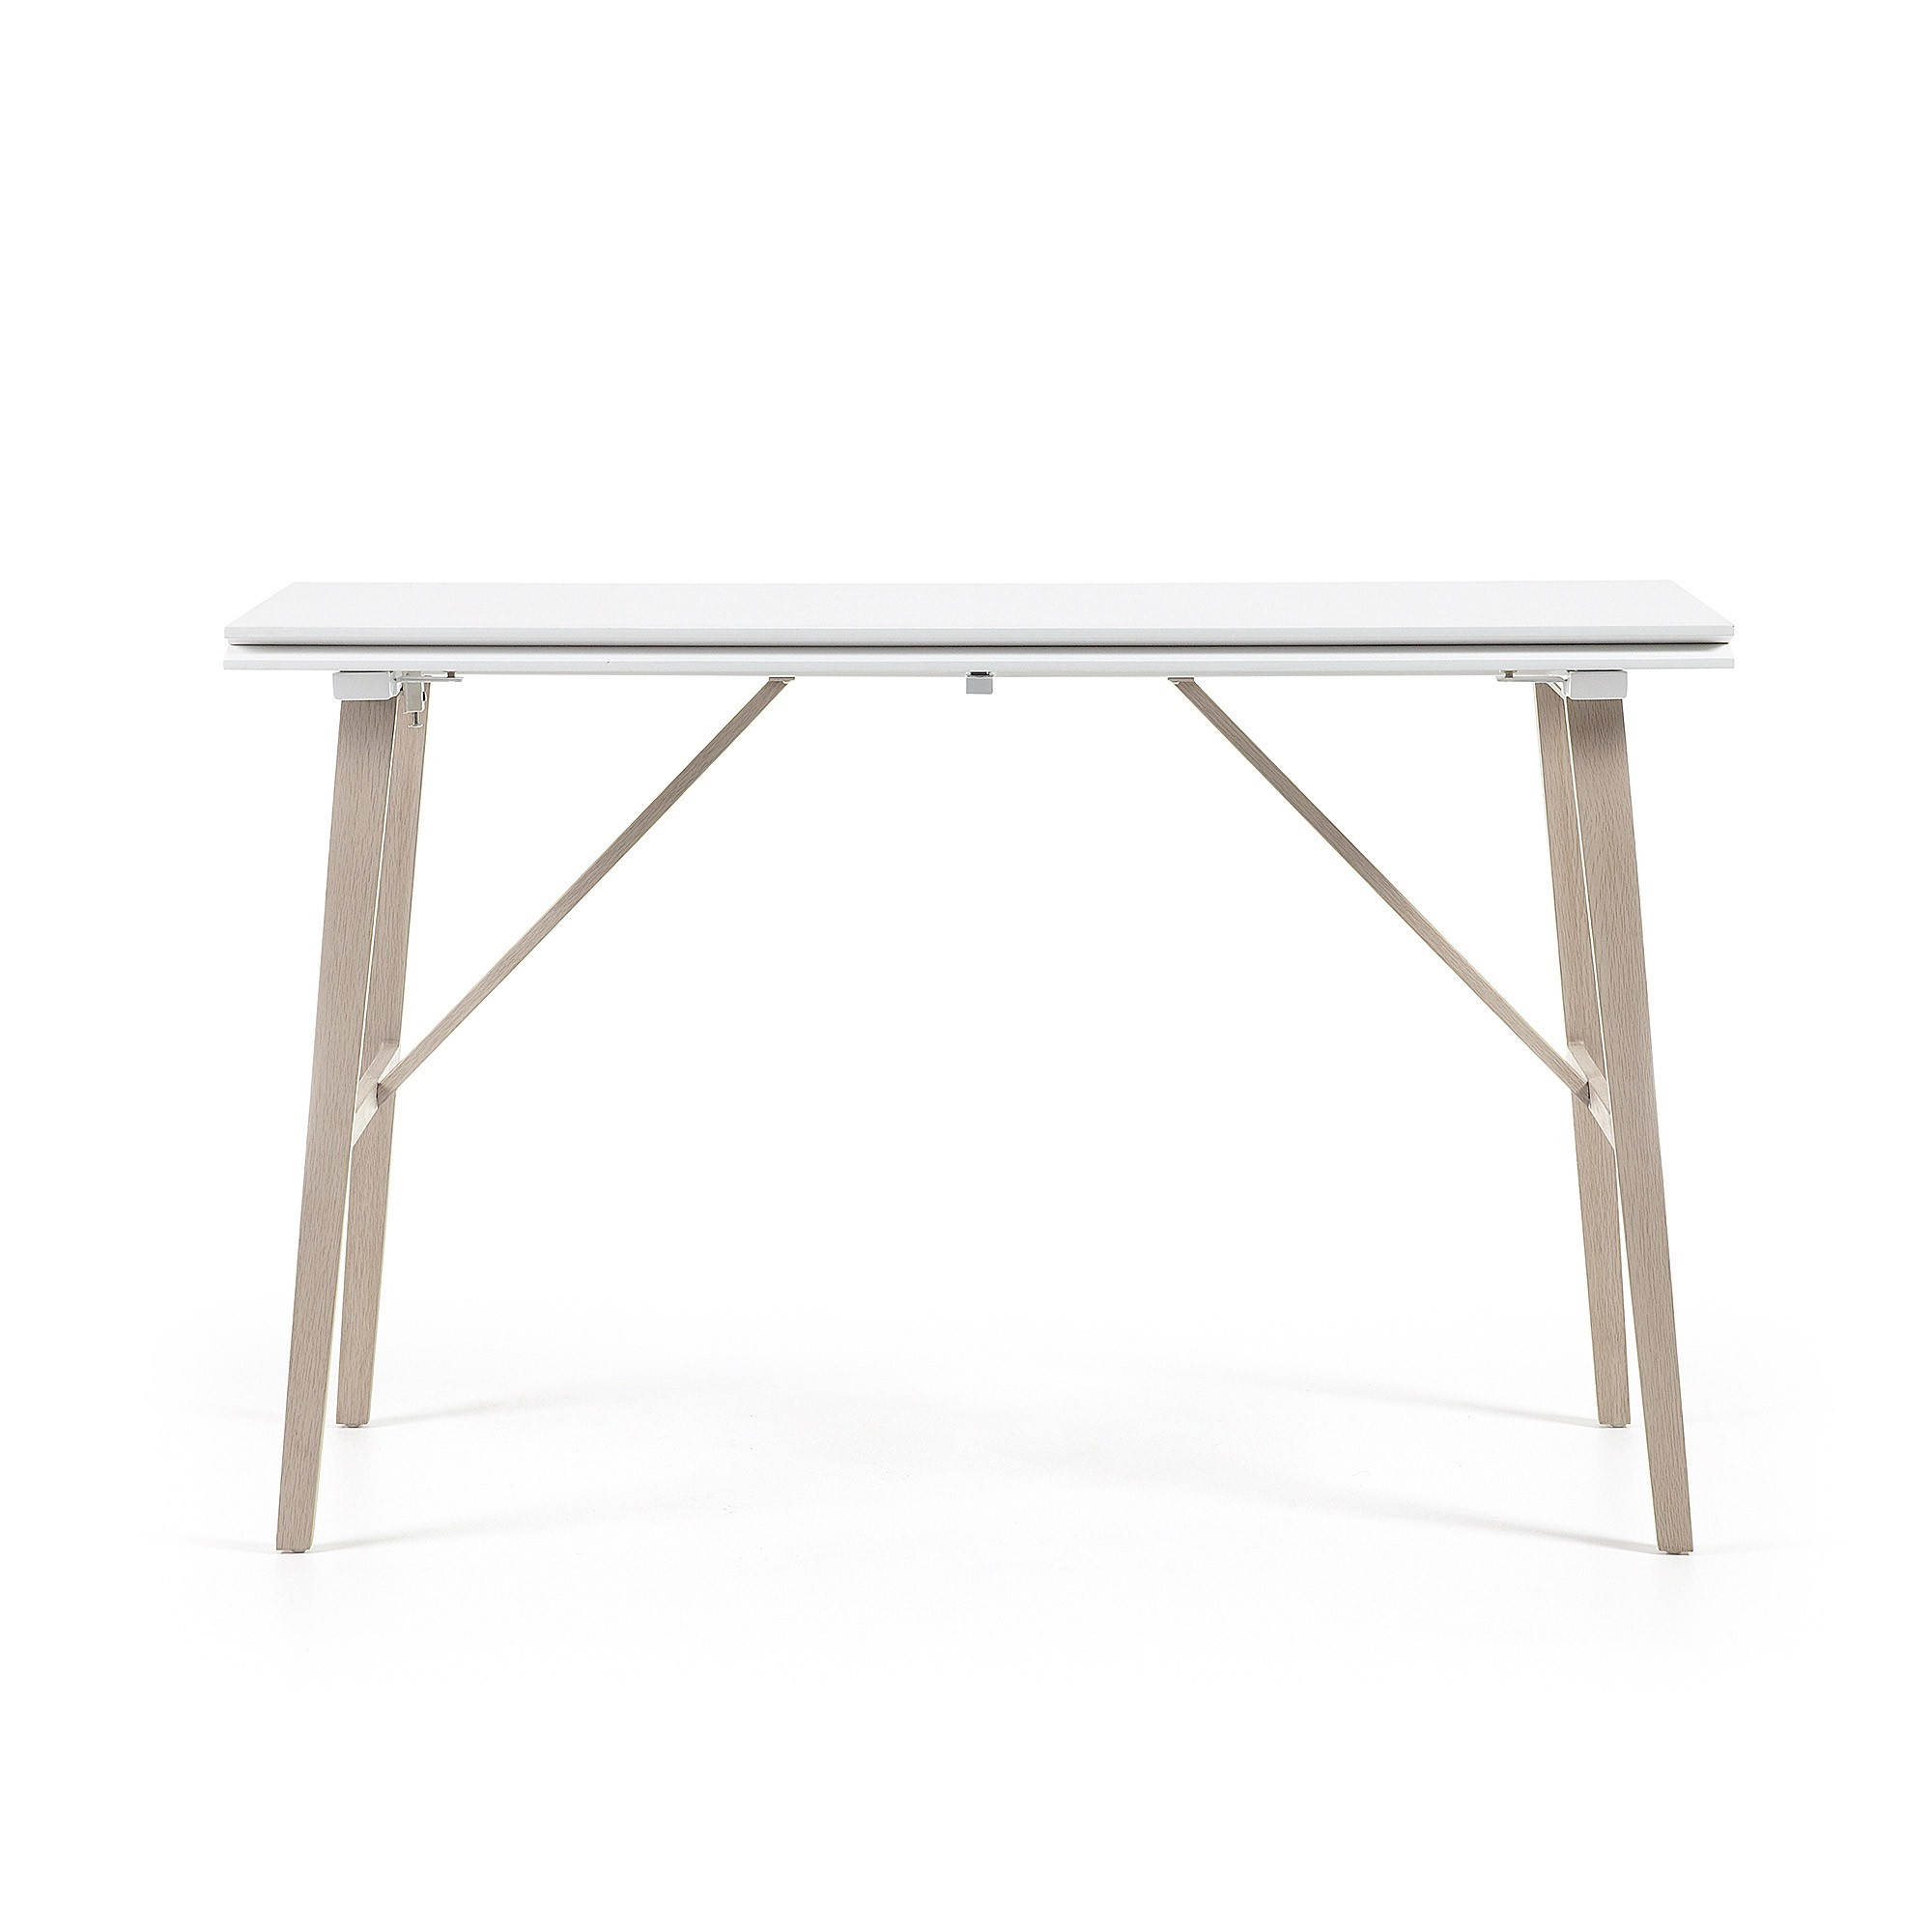 Fierro Convertible Console / Dining Table, 130cm